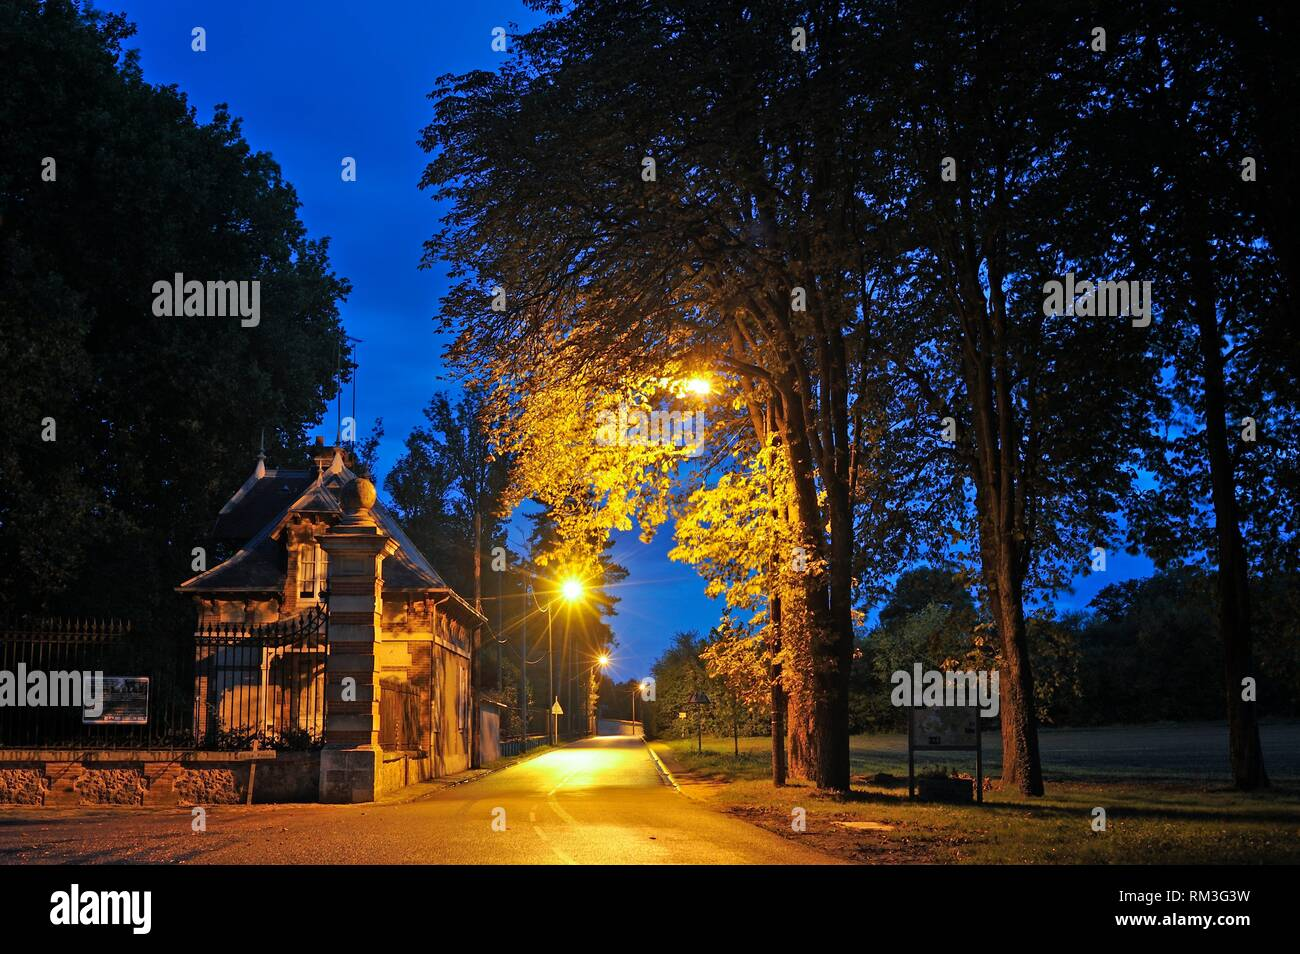 gatehouse of the Chateau de la Boissiere by night, located at the edge of the Forest of Rambouillet, Haute Vallee de Chevreuse Regional Natural Park, - Stock Image